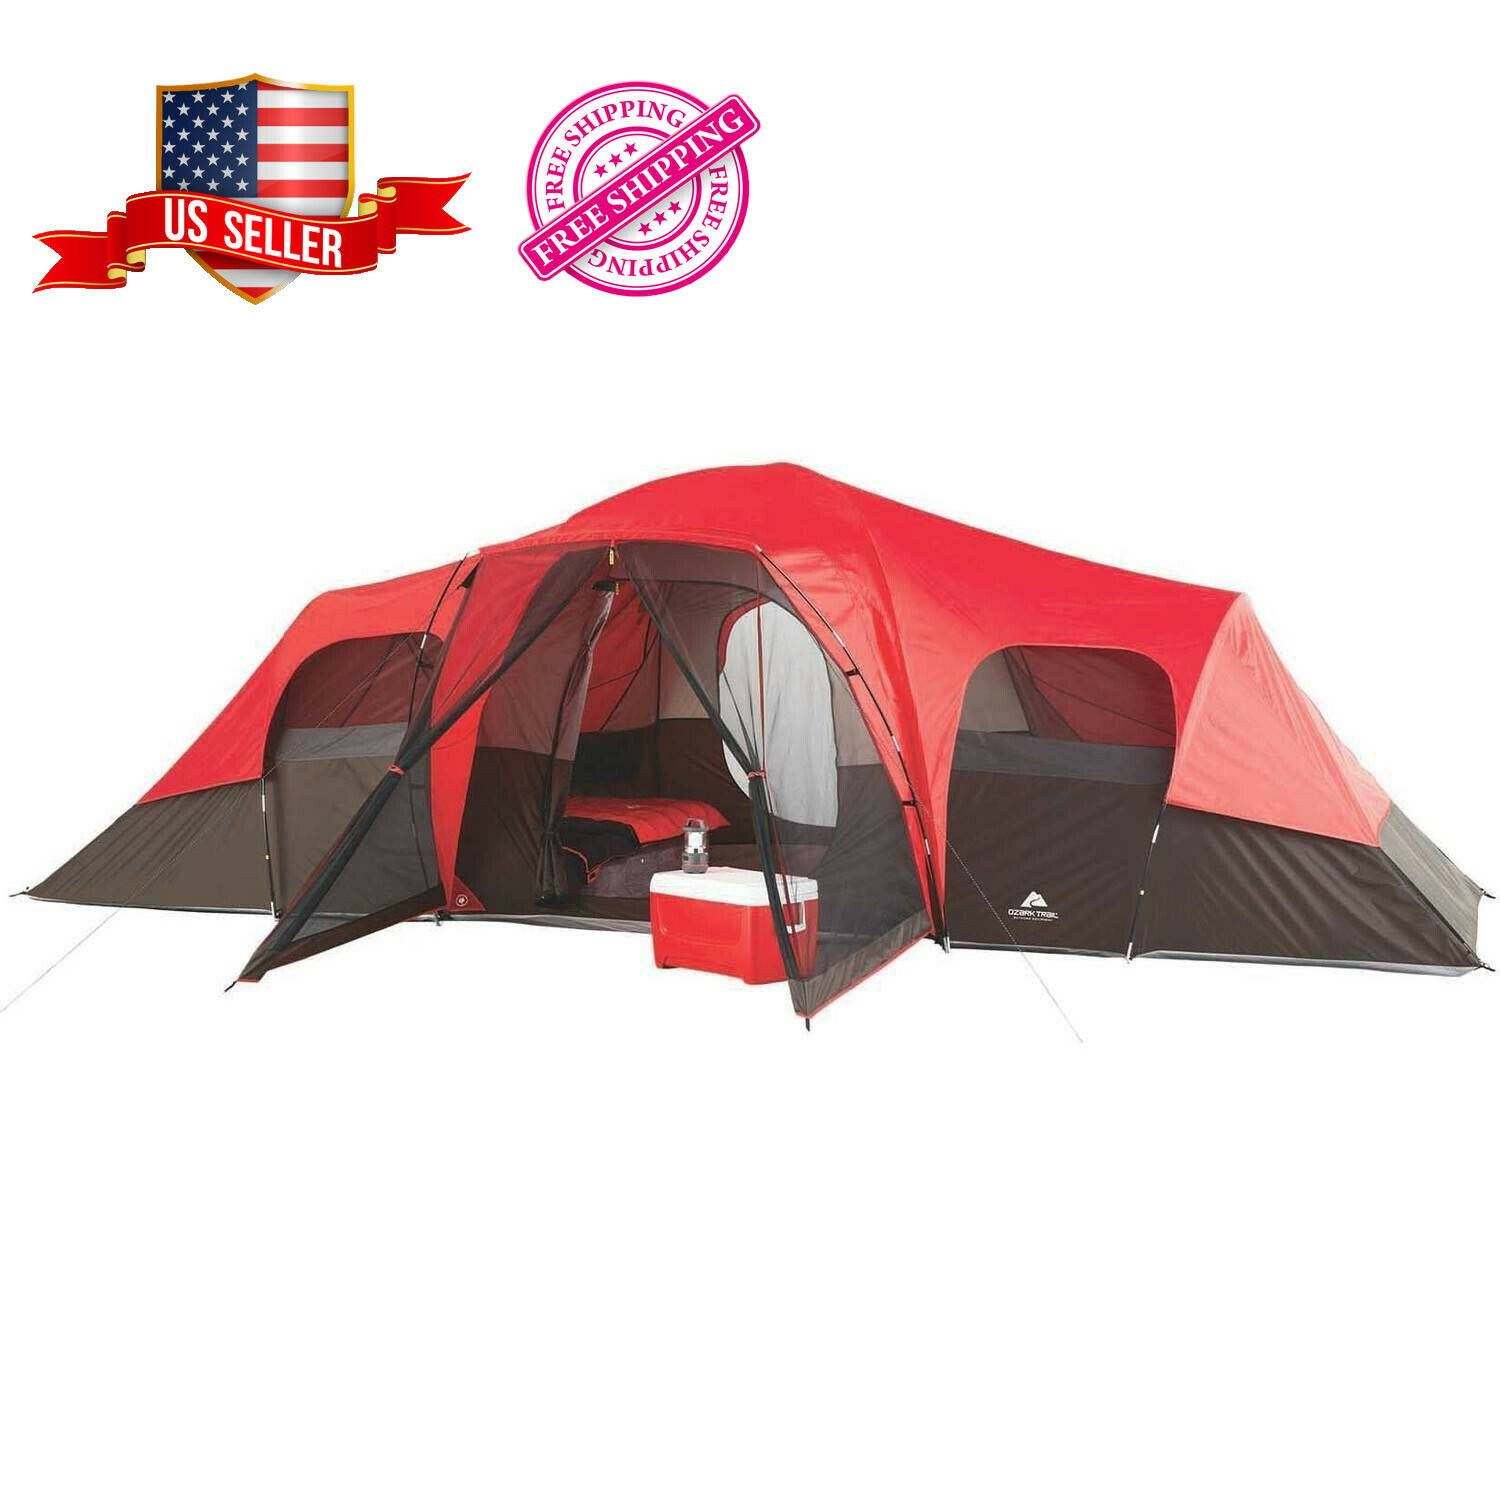 Family Camping Tent Waterproof Outdoor Large 10 Person Sheet Floor Room Dividers